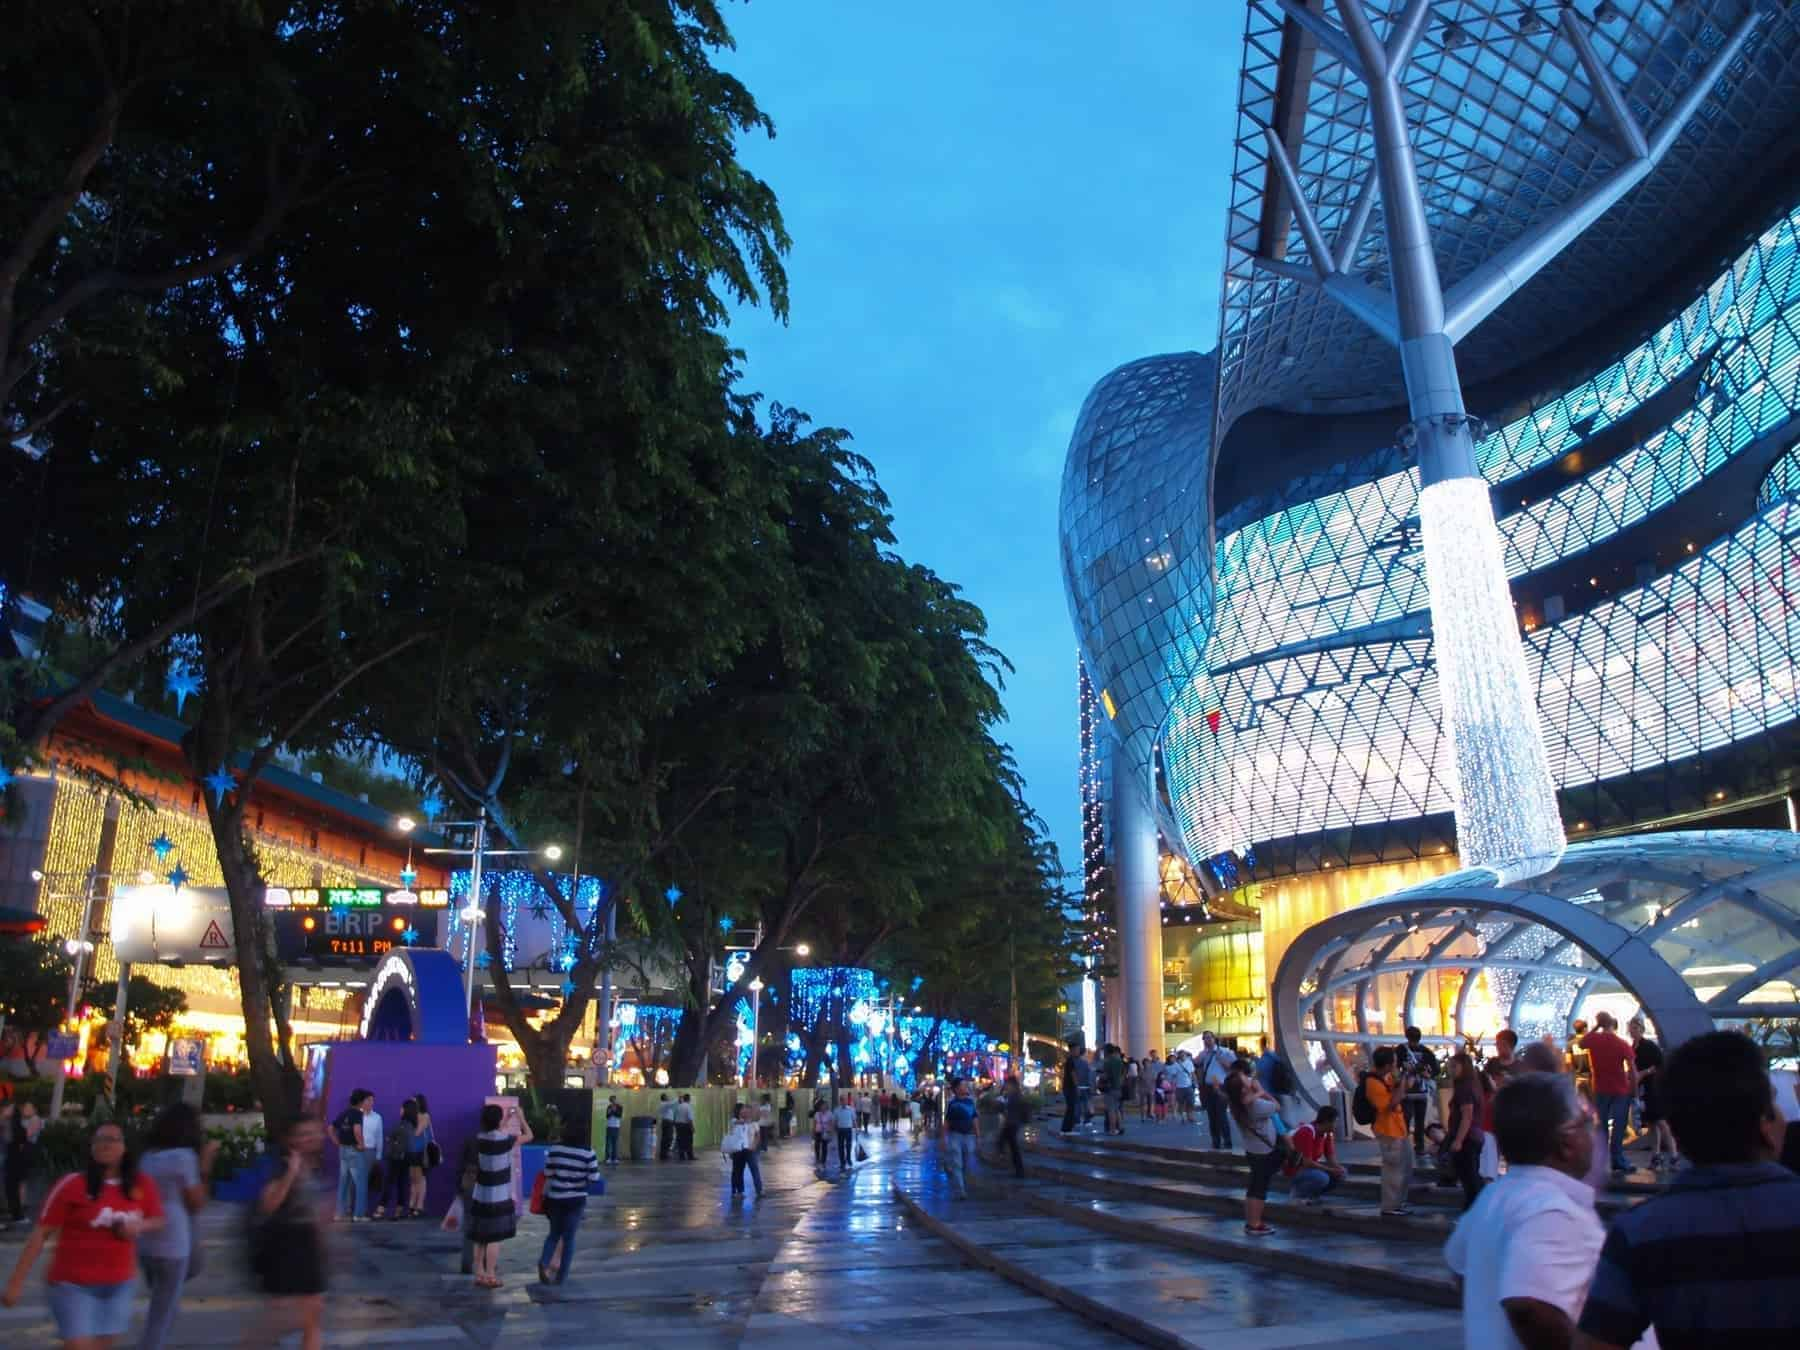 Orchard Road in Singapore is well known as a shopping paradise. Here is the iconic ION Orchard, a shopping mall, a popular place where locals and tourists alike gather together to watch the Christmas light up.